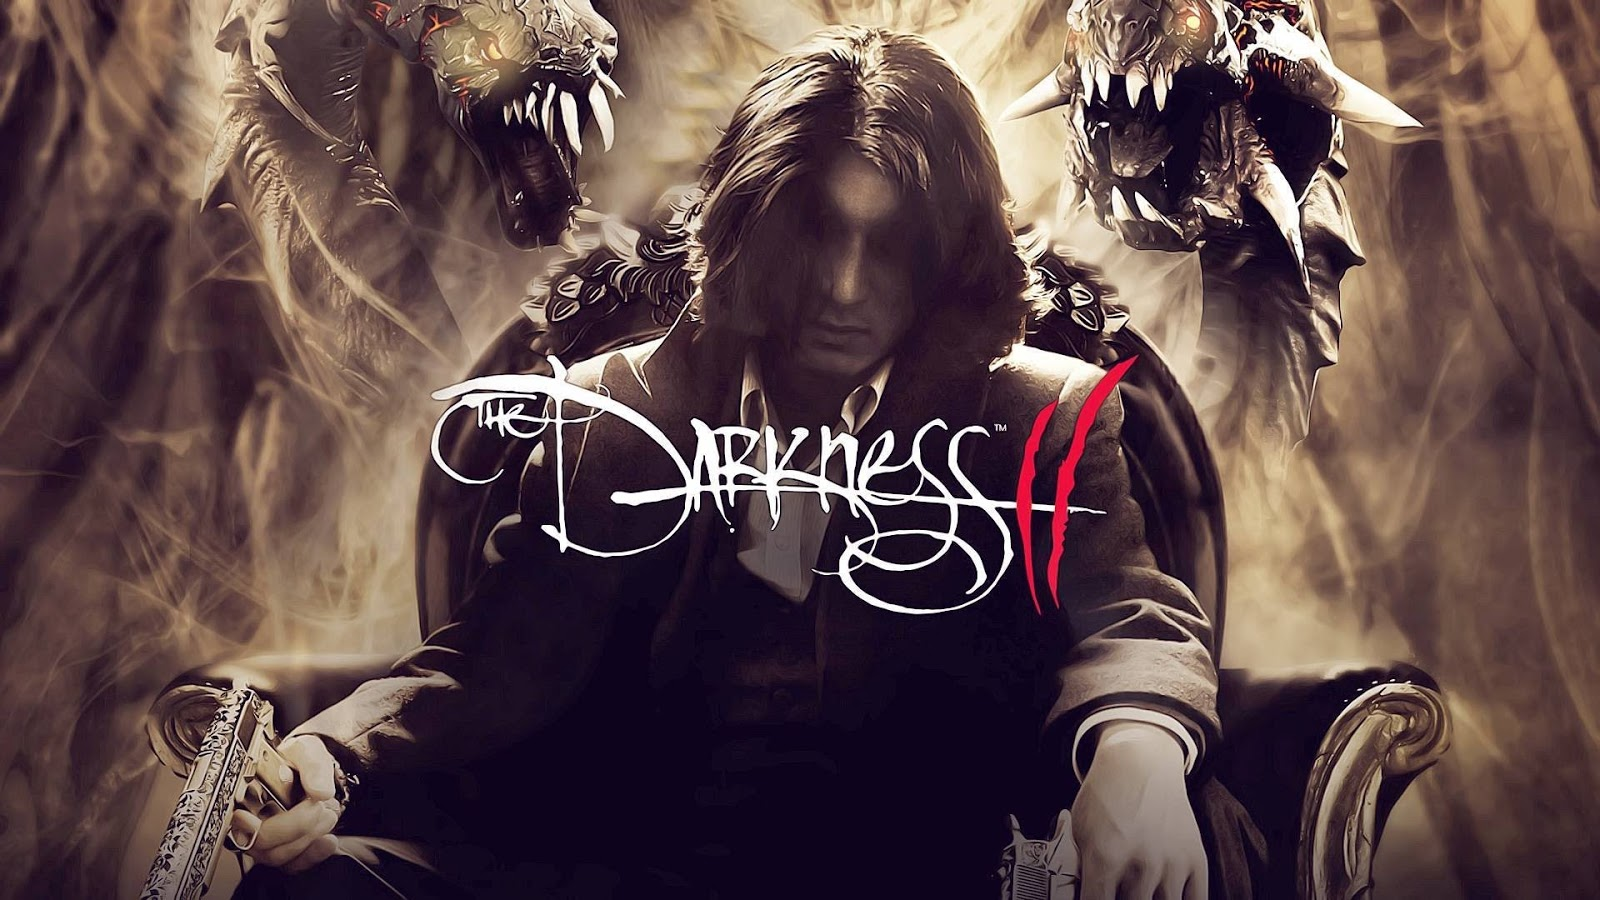 The%2BDarkness%2B2 - The Darkness 2 For PC